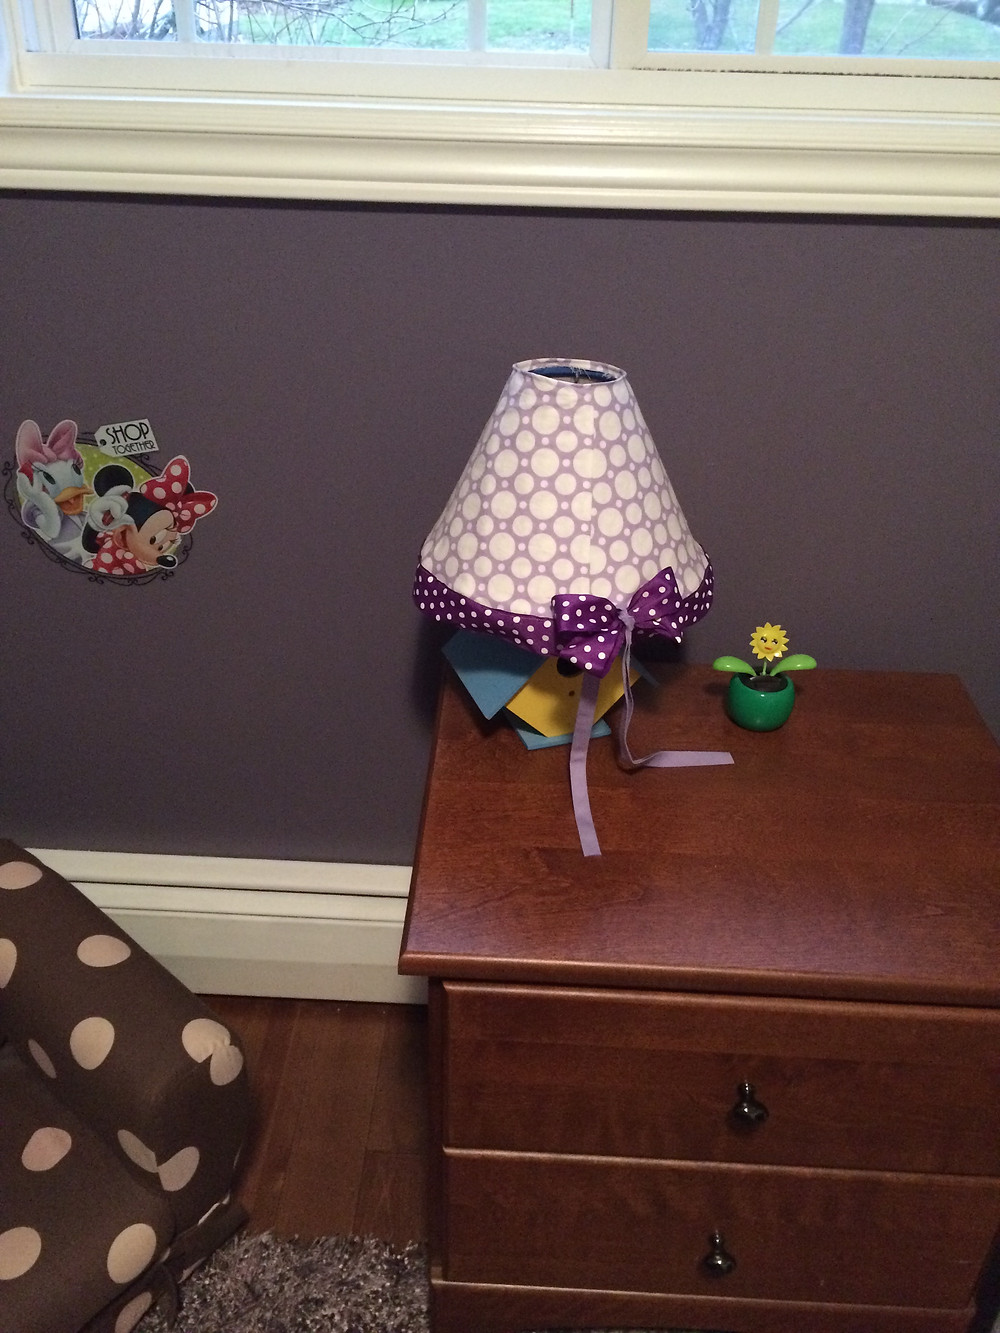 New lampshade cover polk-a-dots